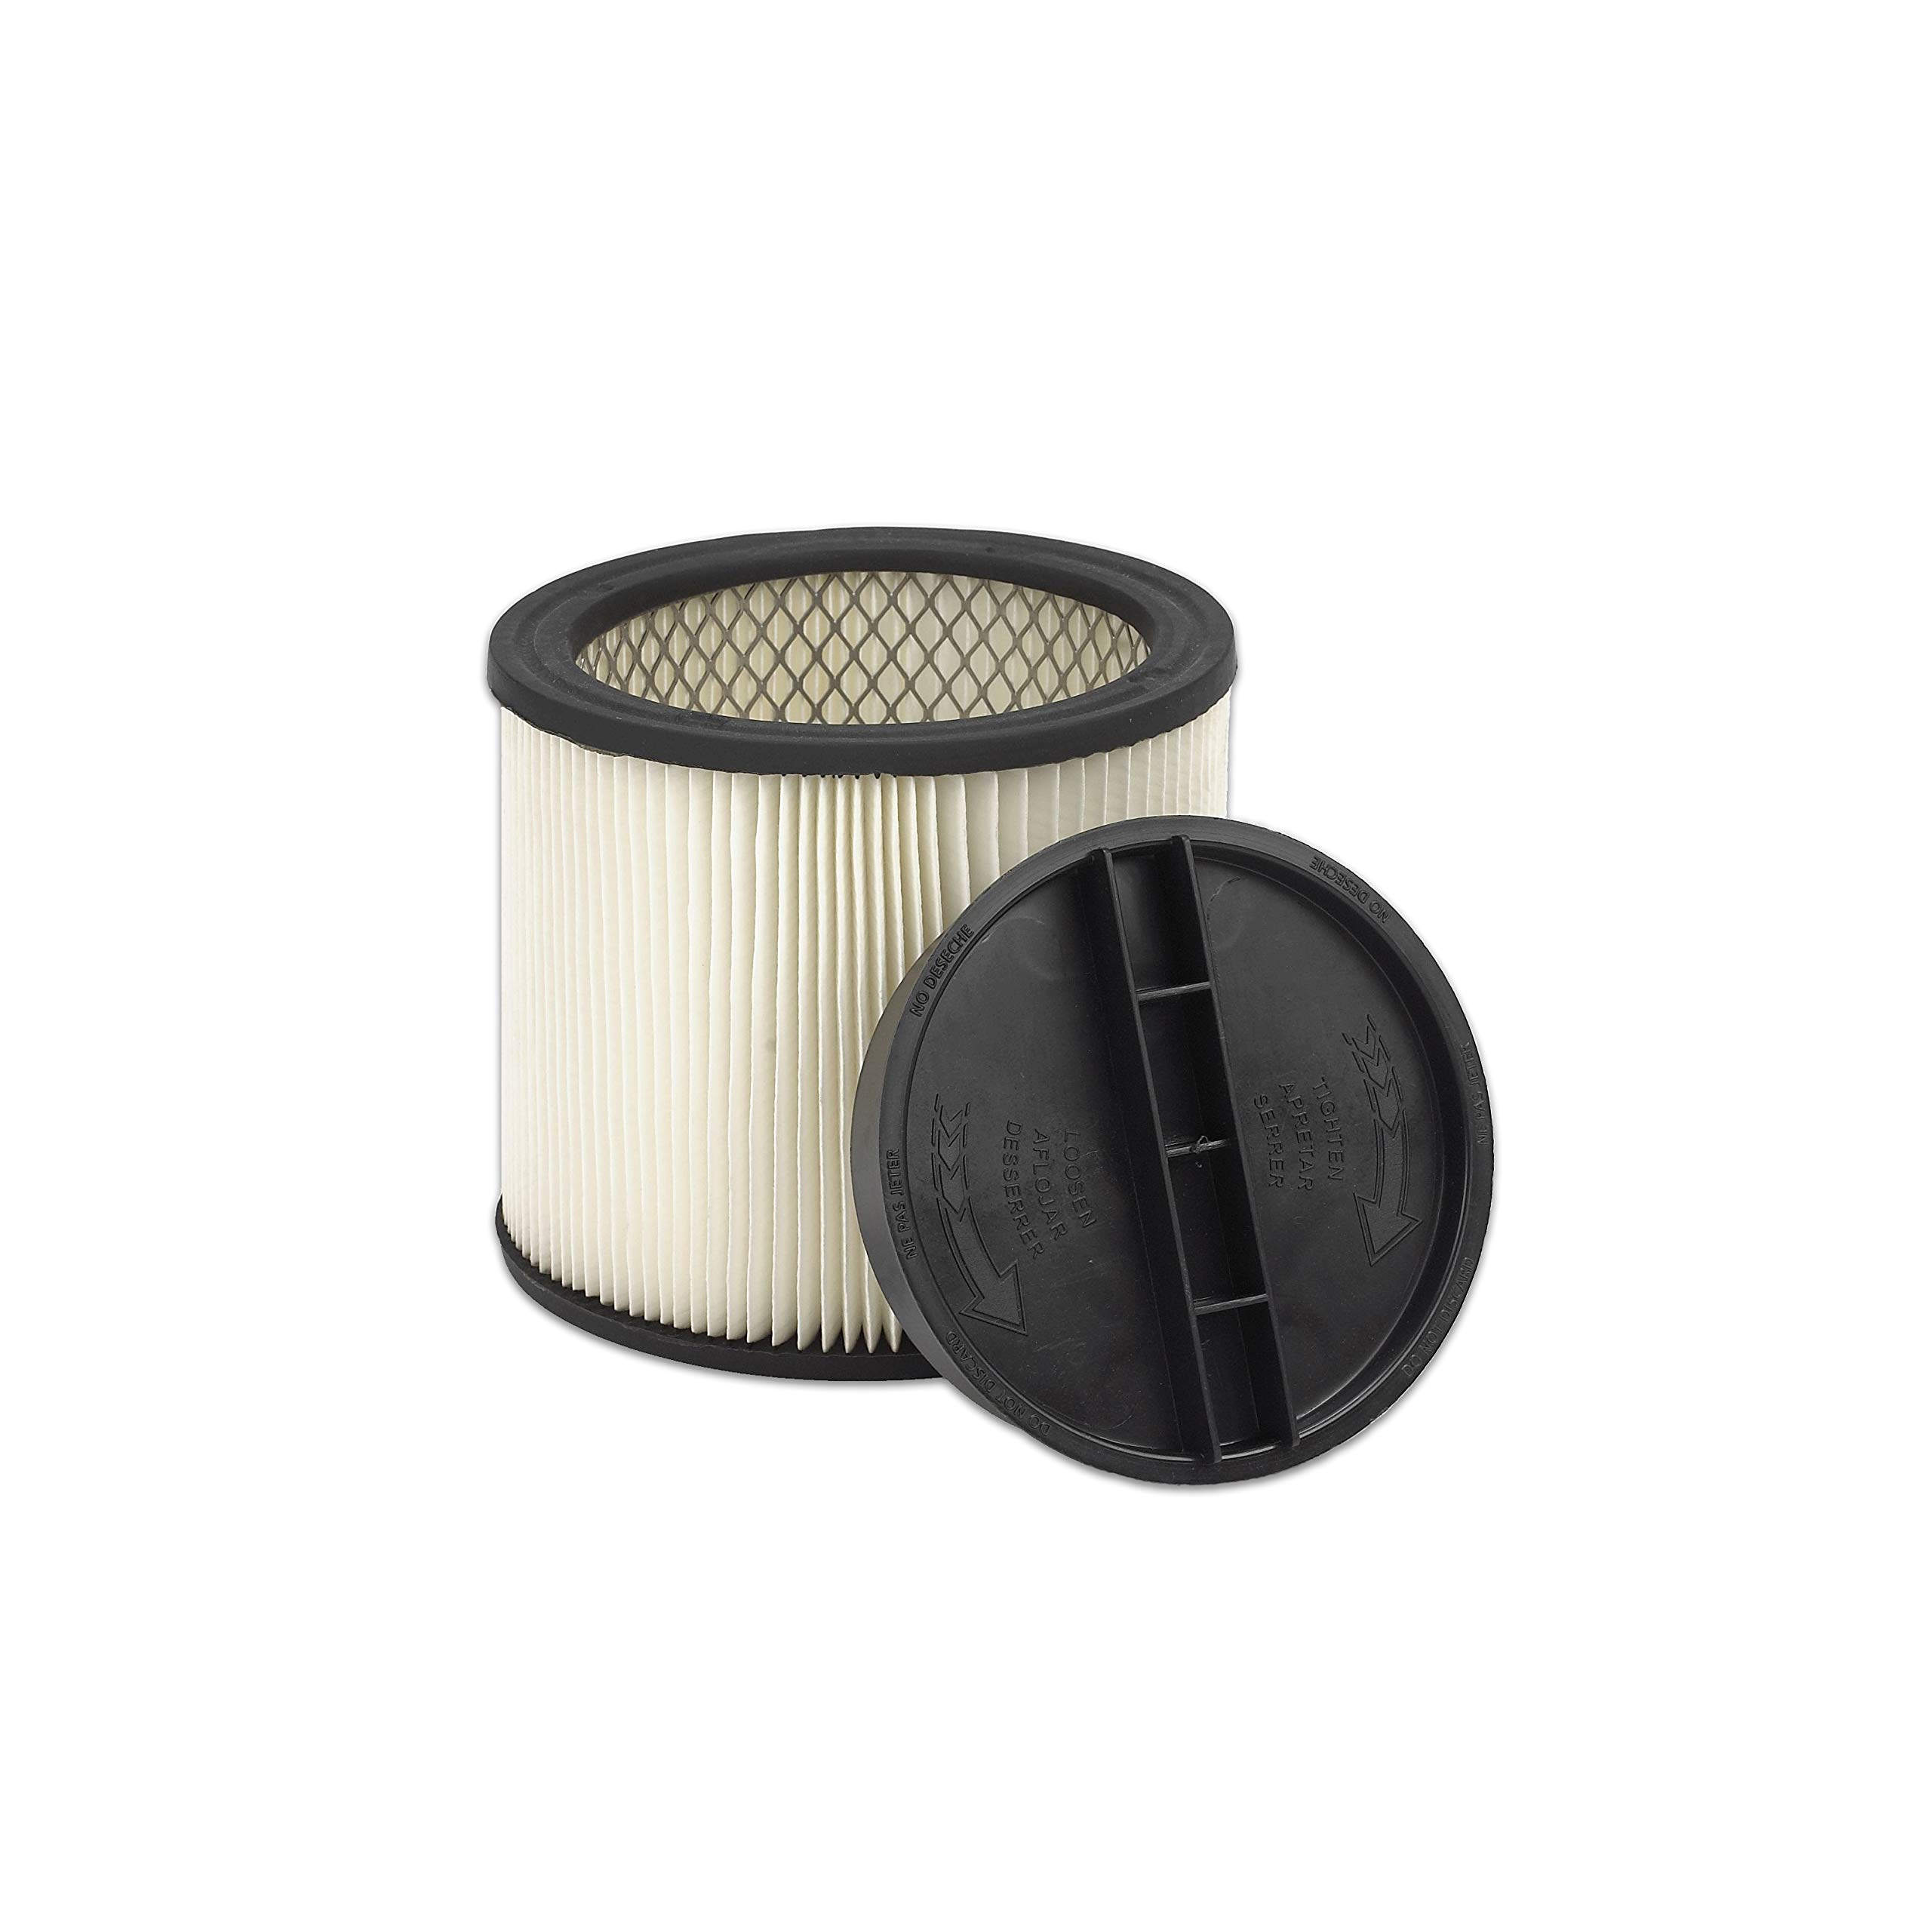 Shop-Vac 90304 Genuine Cartridge Filter 4 Pack by Shop-Vac